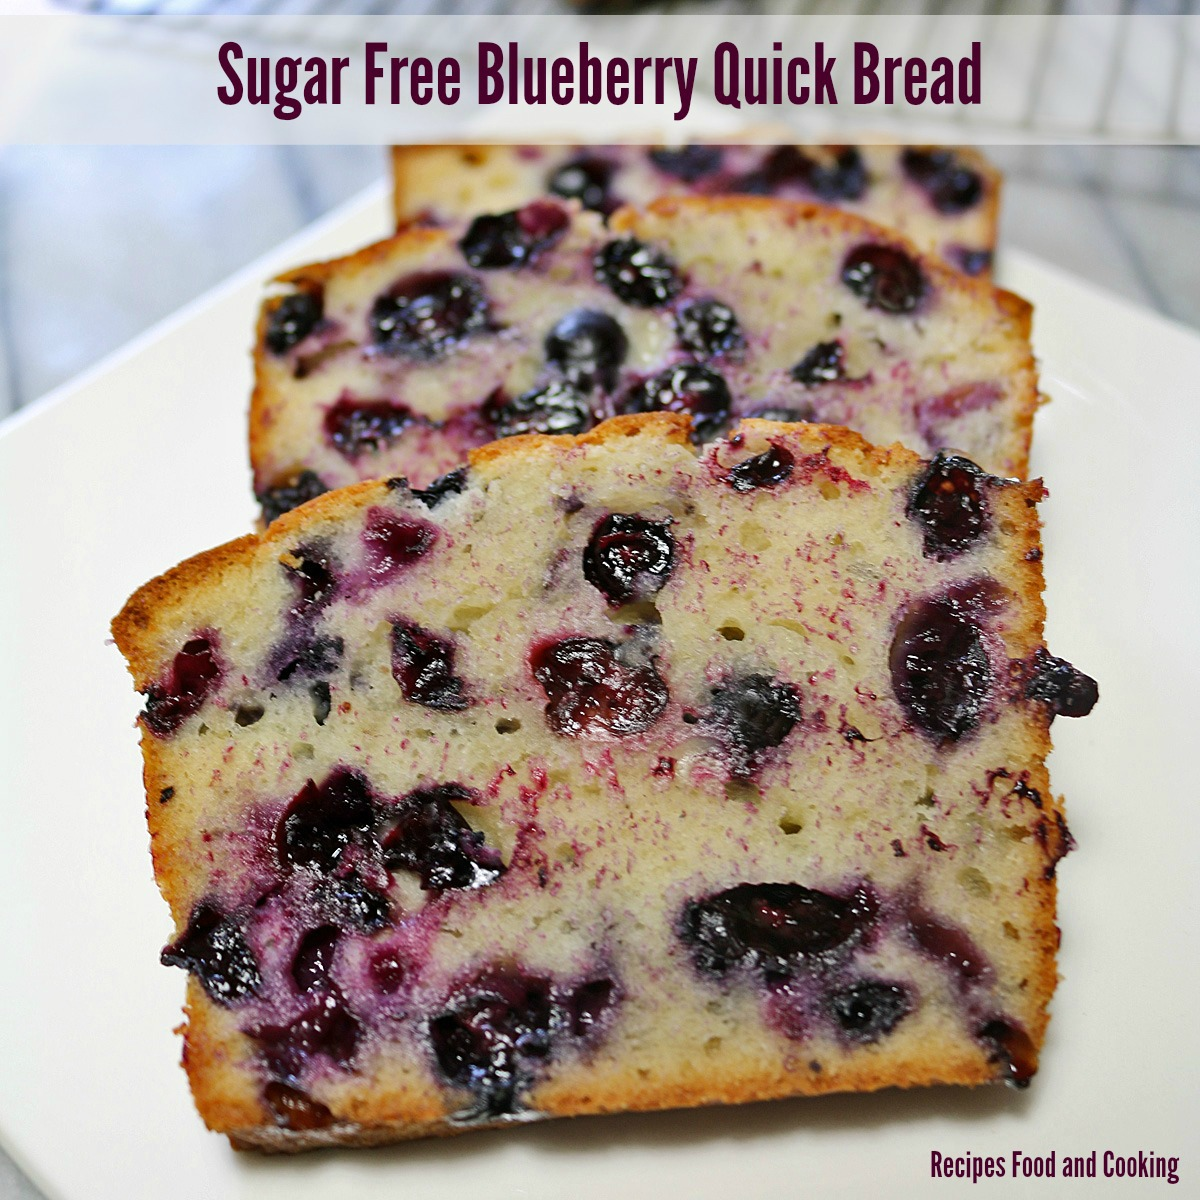 Sugar Free Blueberry Quick Bread